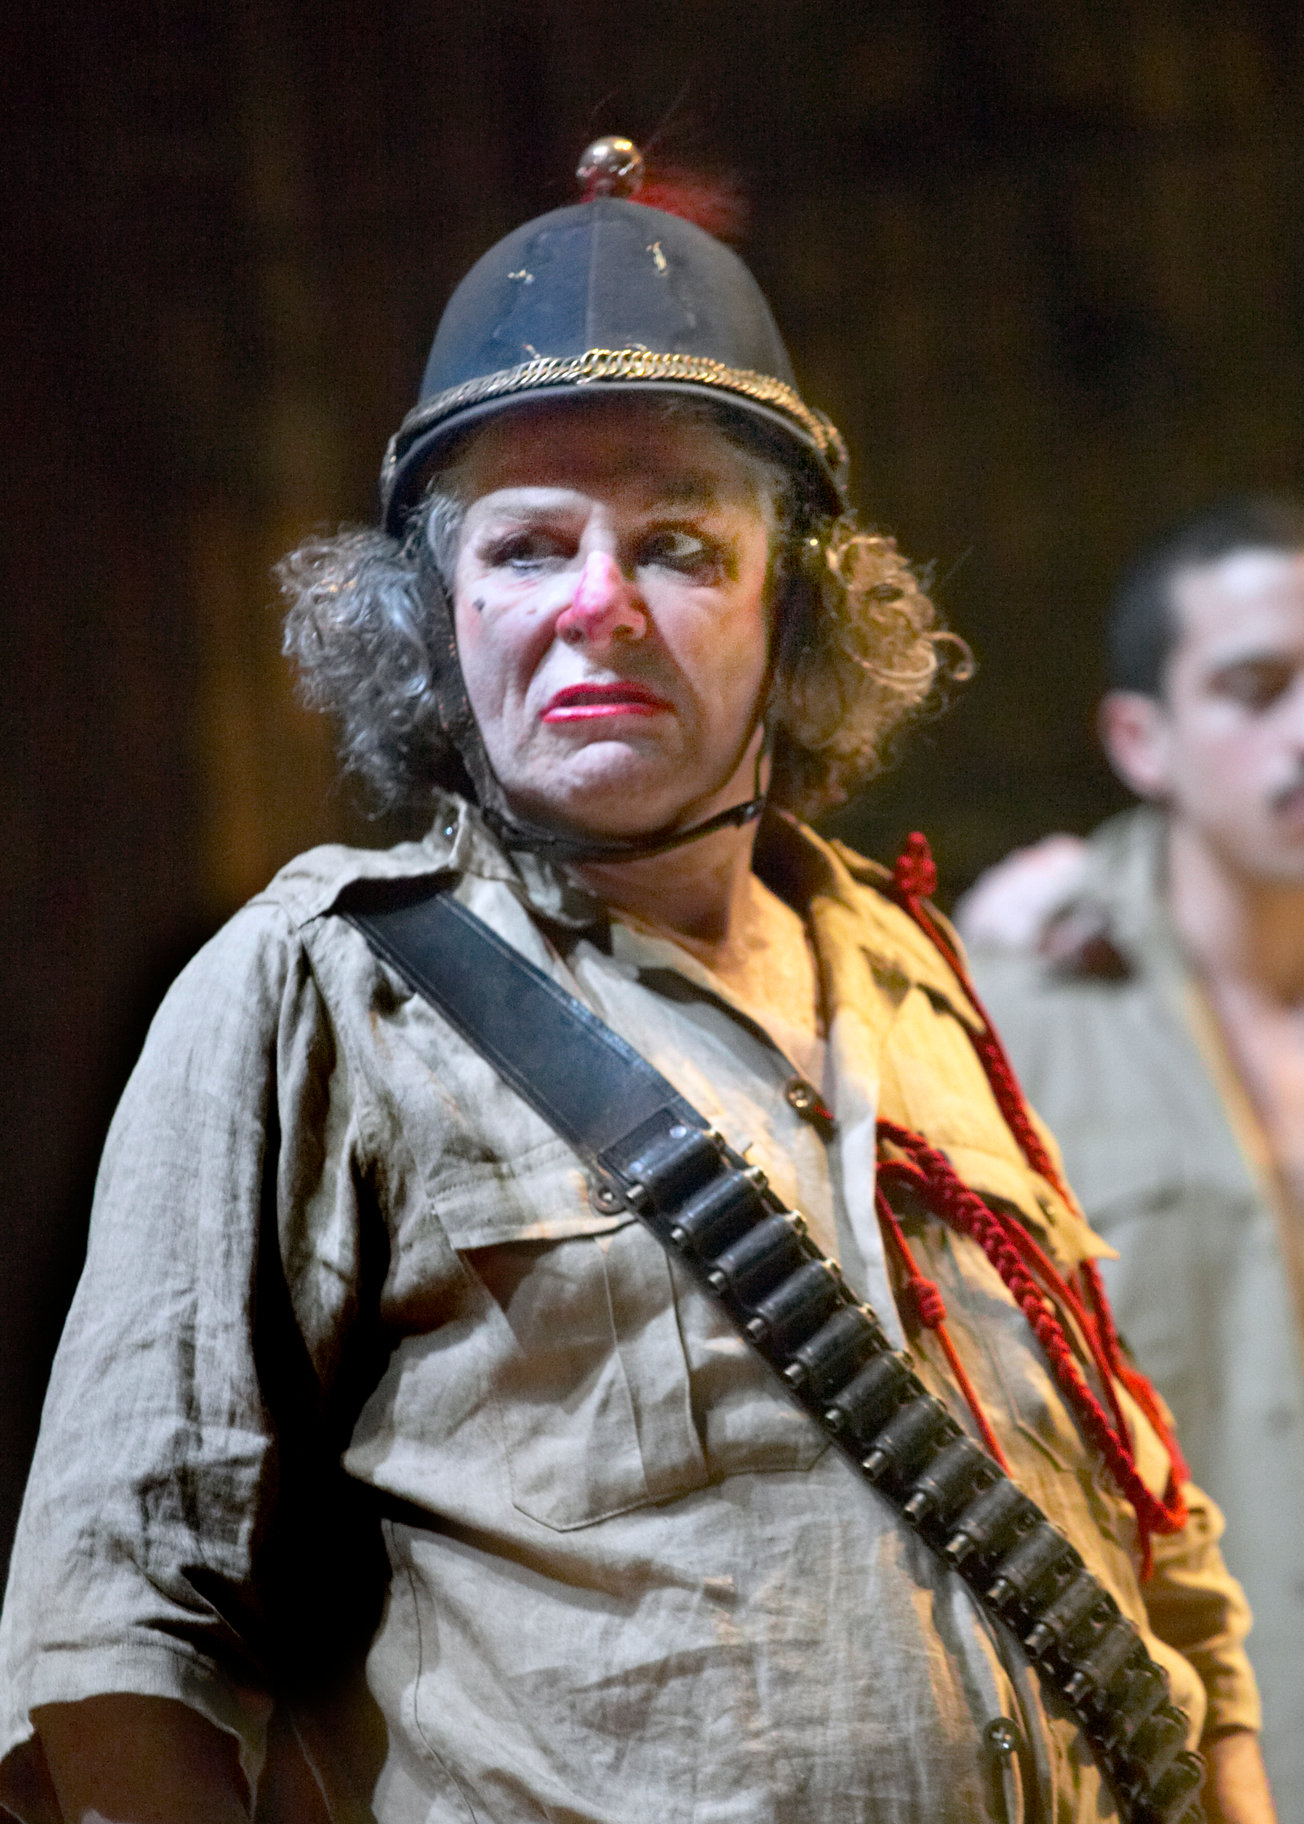 Bette Bourne as Dogberry in faded clown makeup.